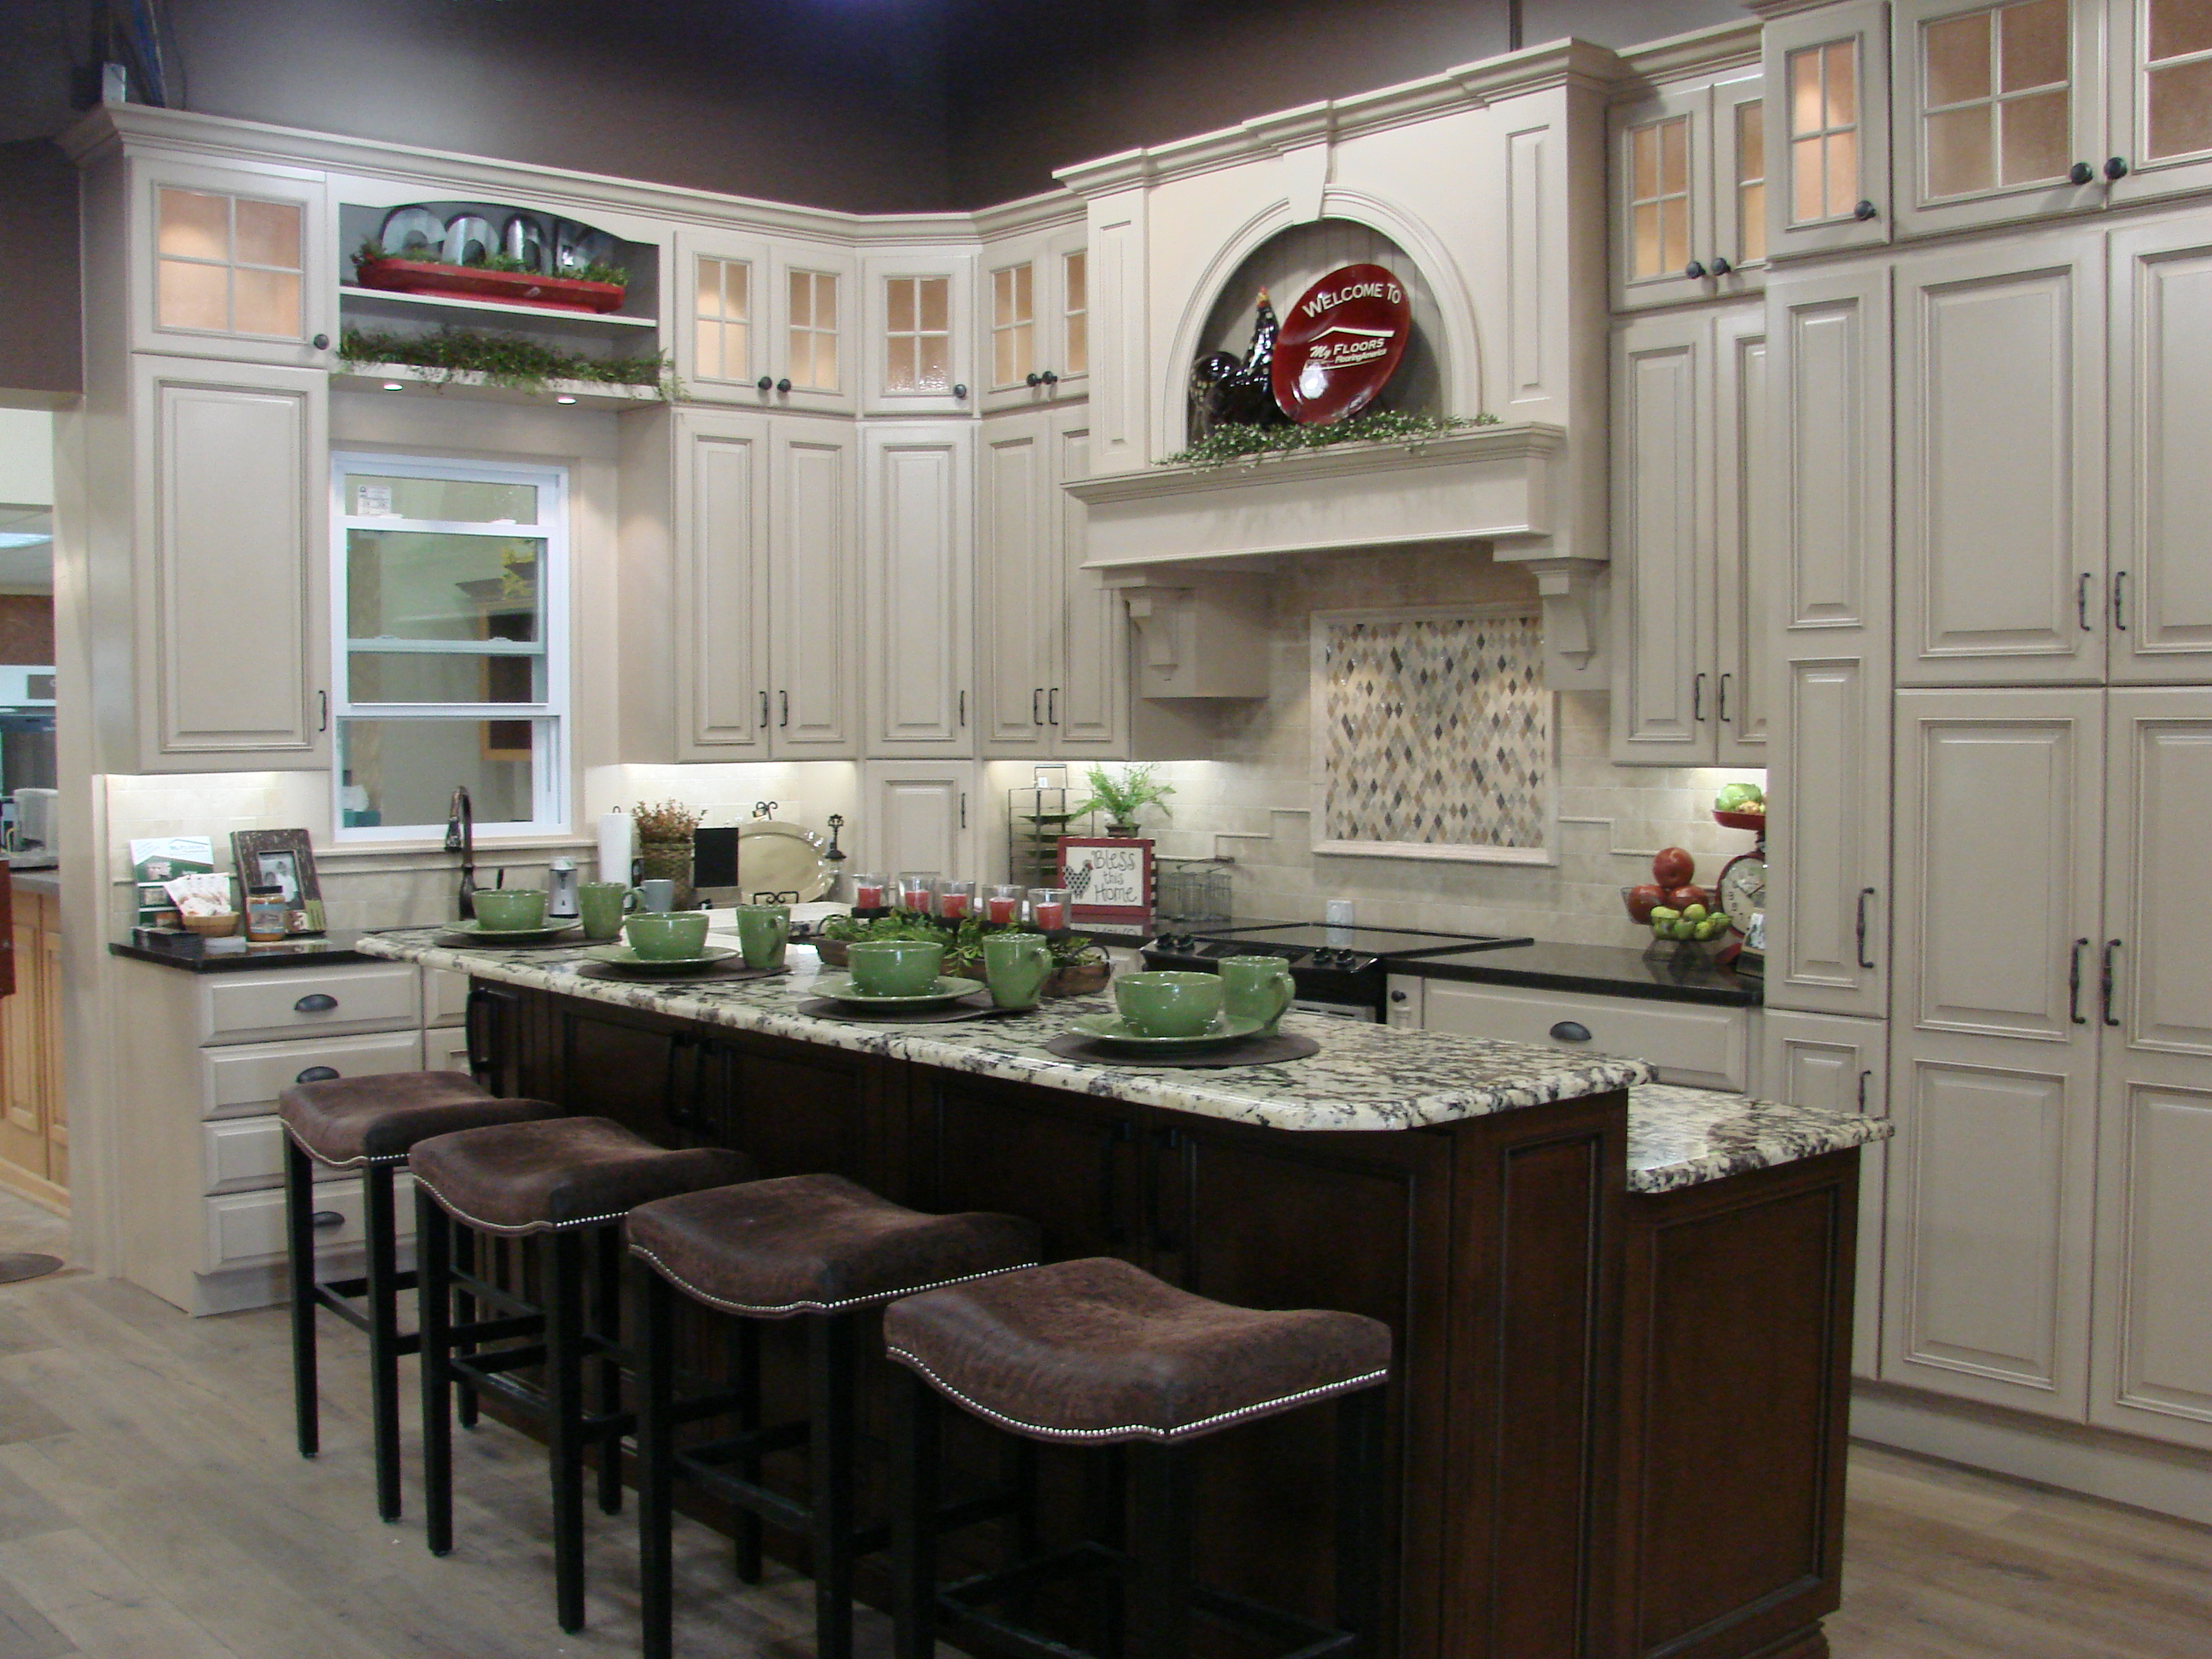 kitchen remodeling kitchen remodeling companies Kitchen Remodeling Contractor Starts with Design